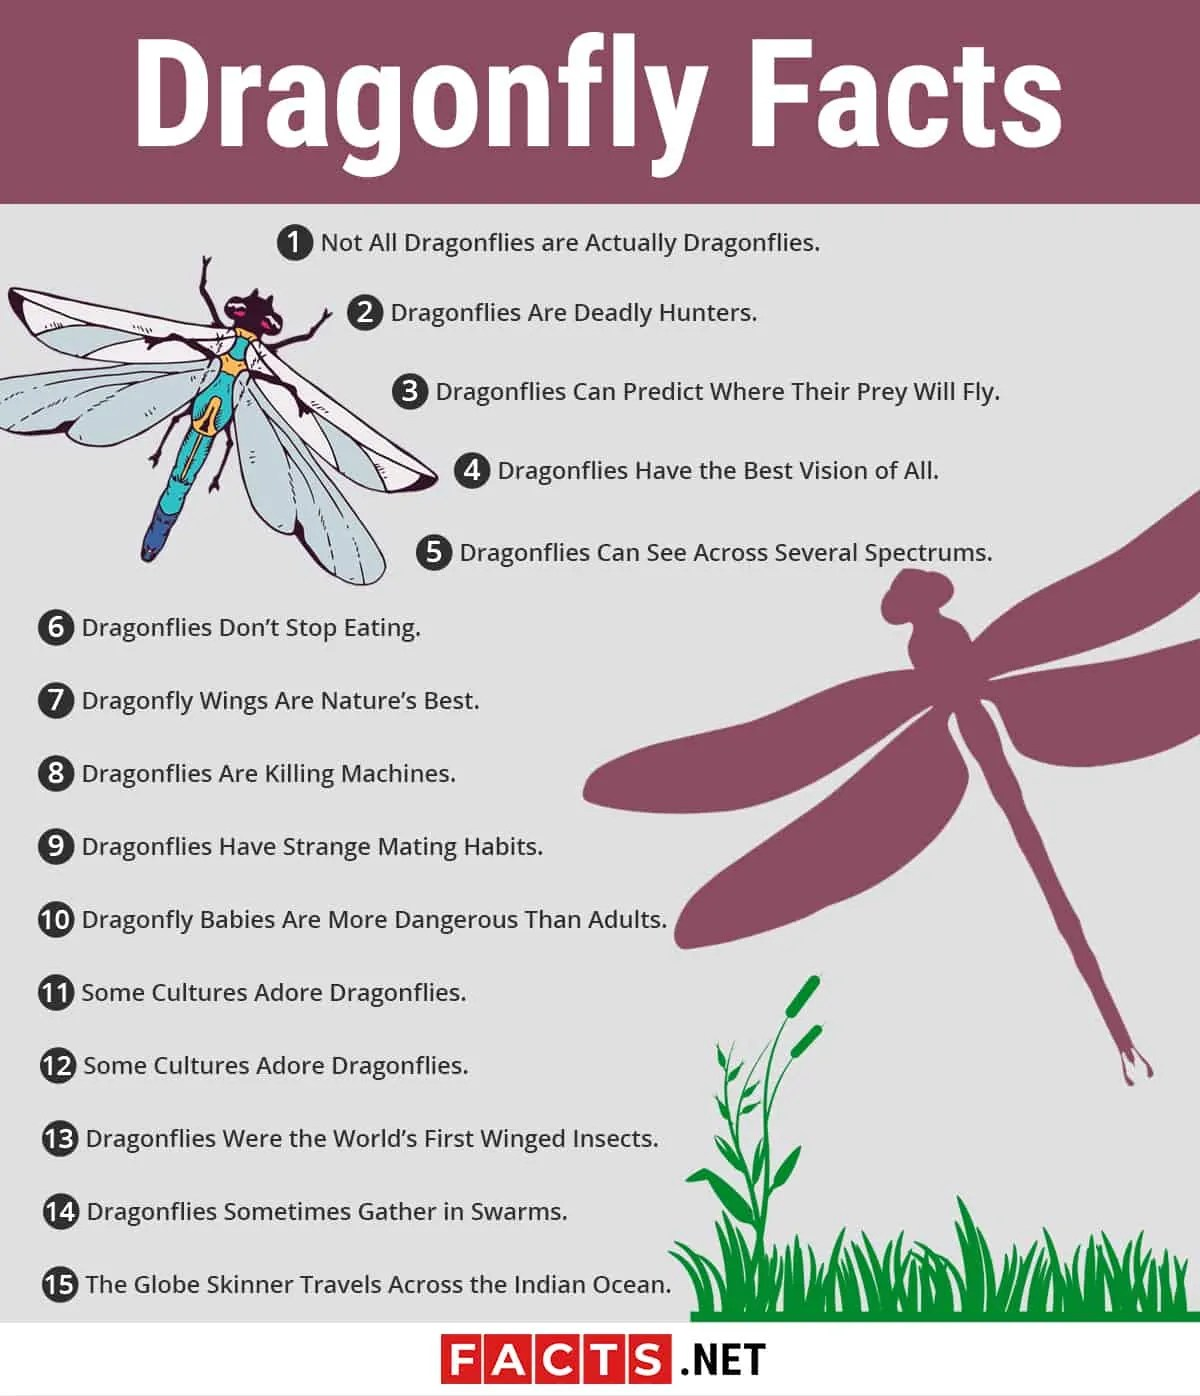 Top 15 Dragonfly Facts